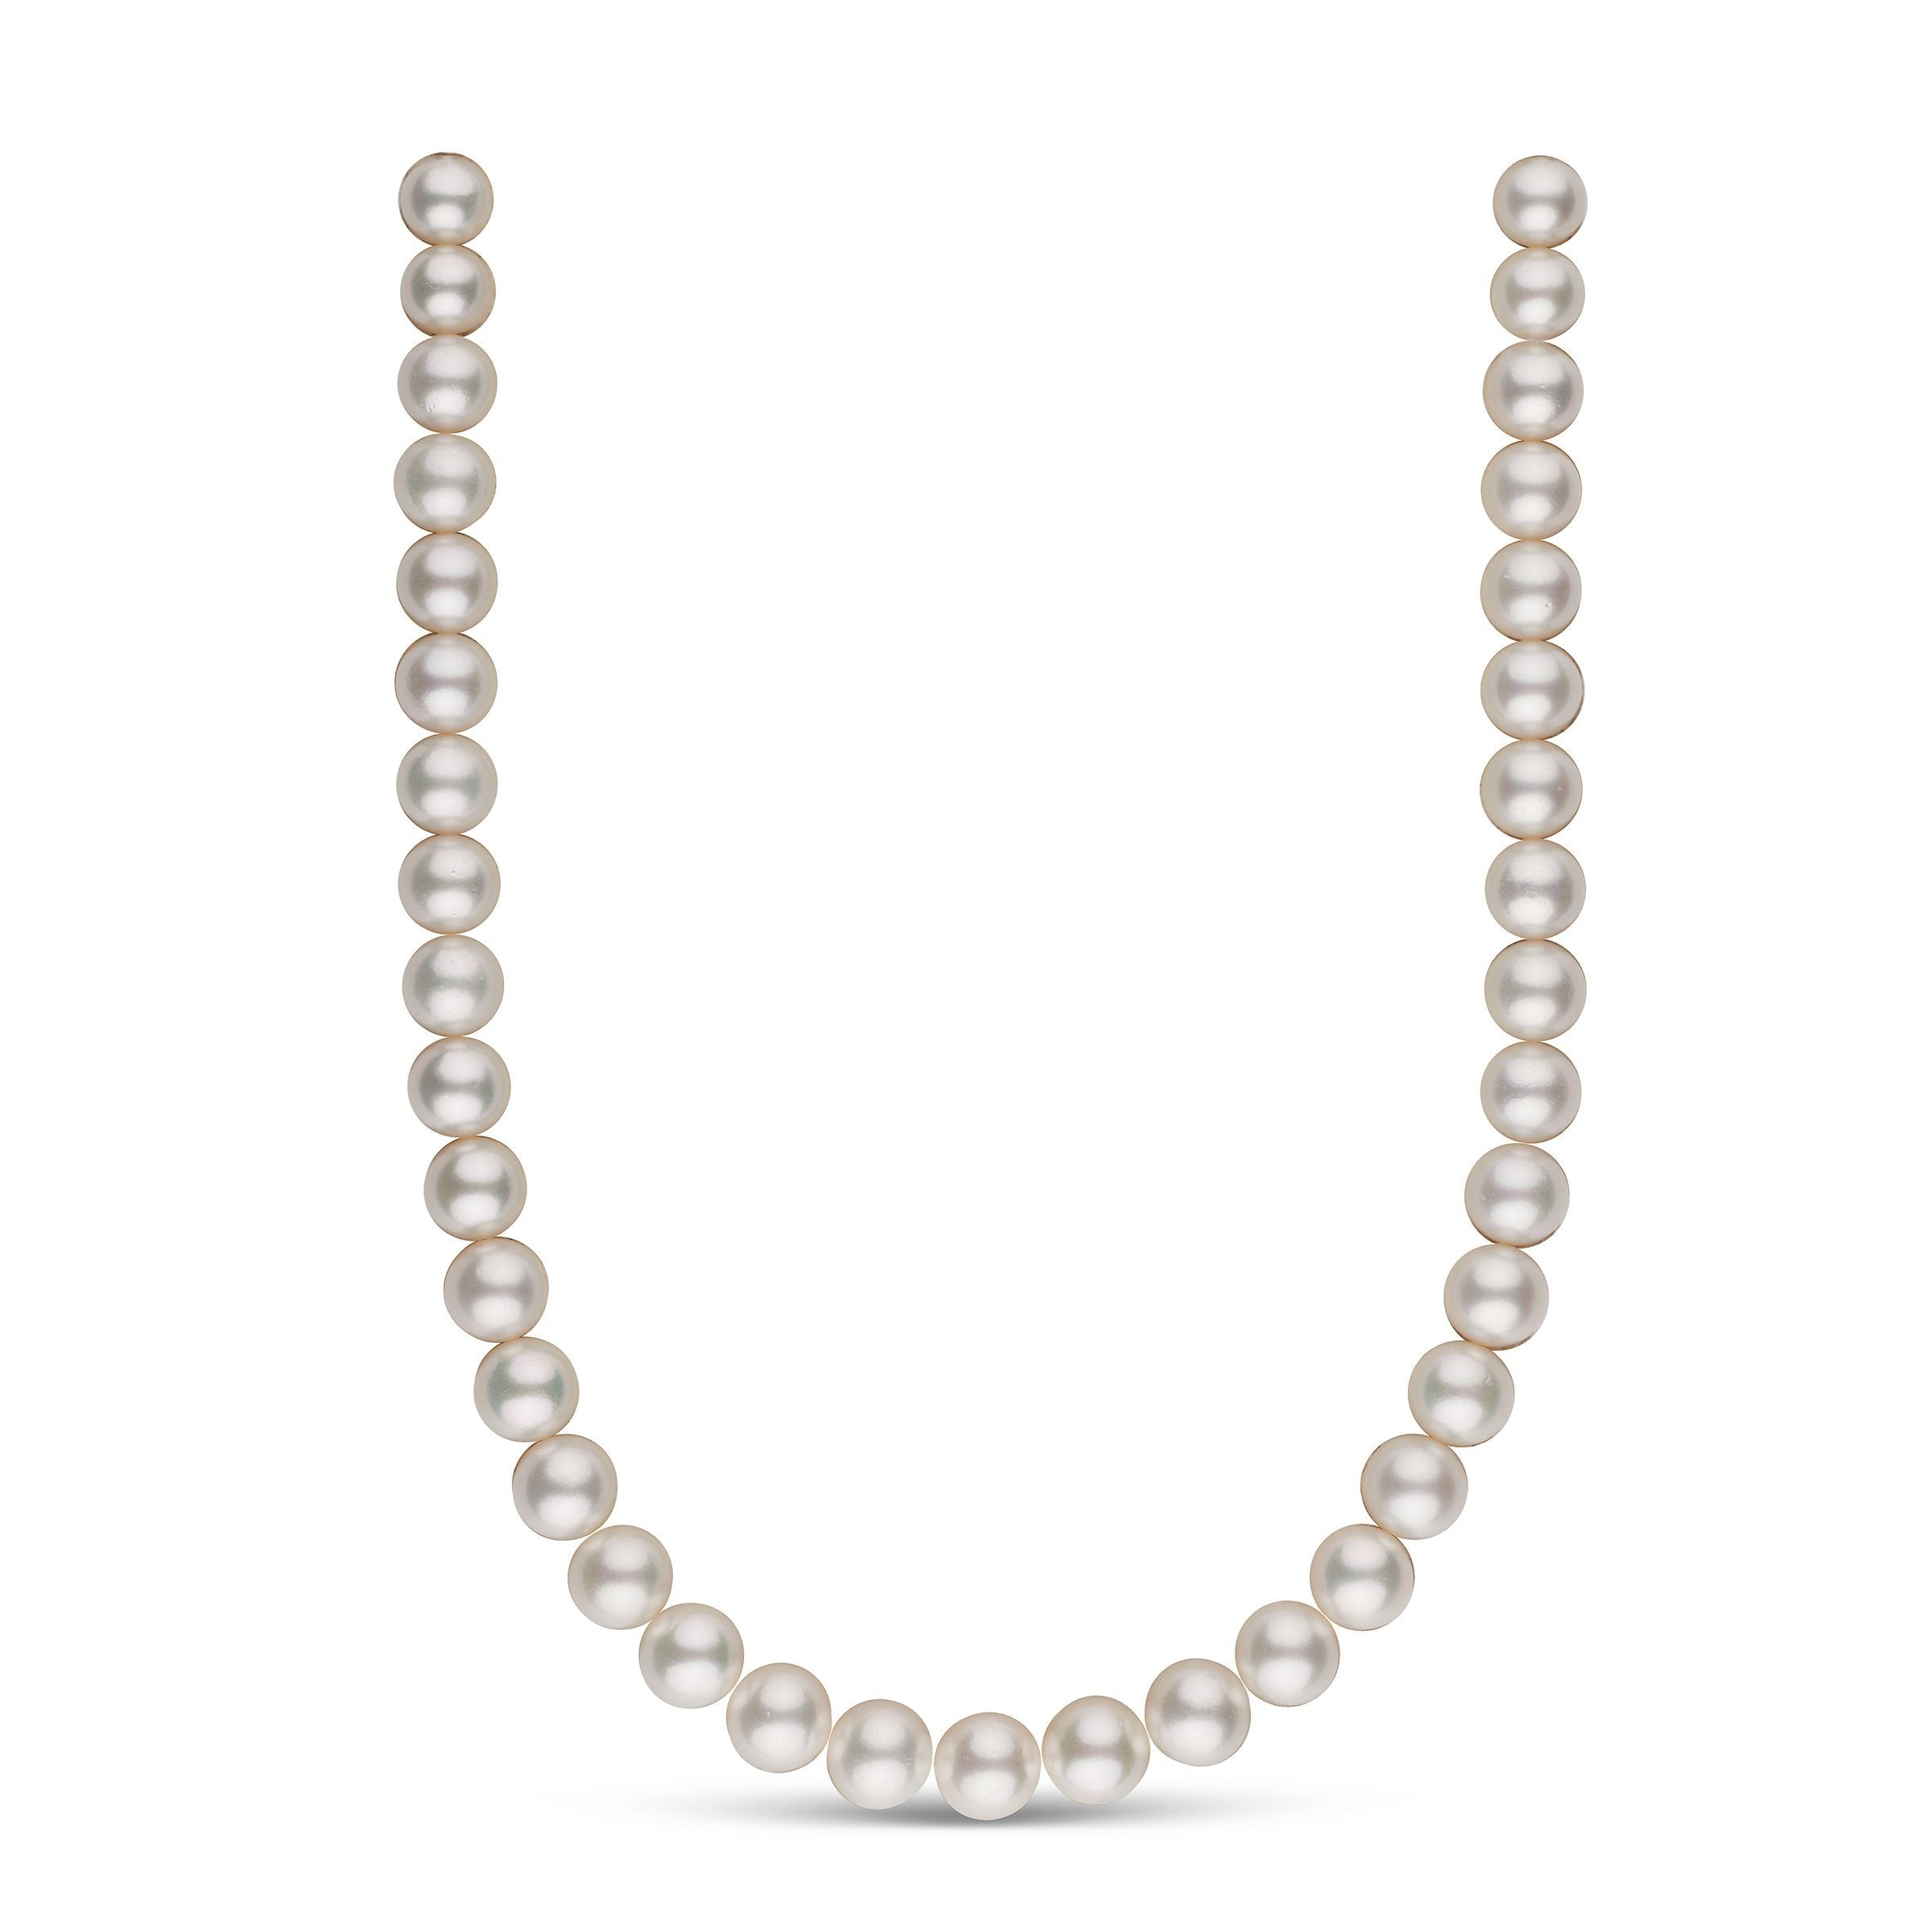 The Quartet White South Sea Pearl Necklace